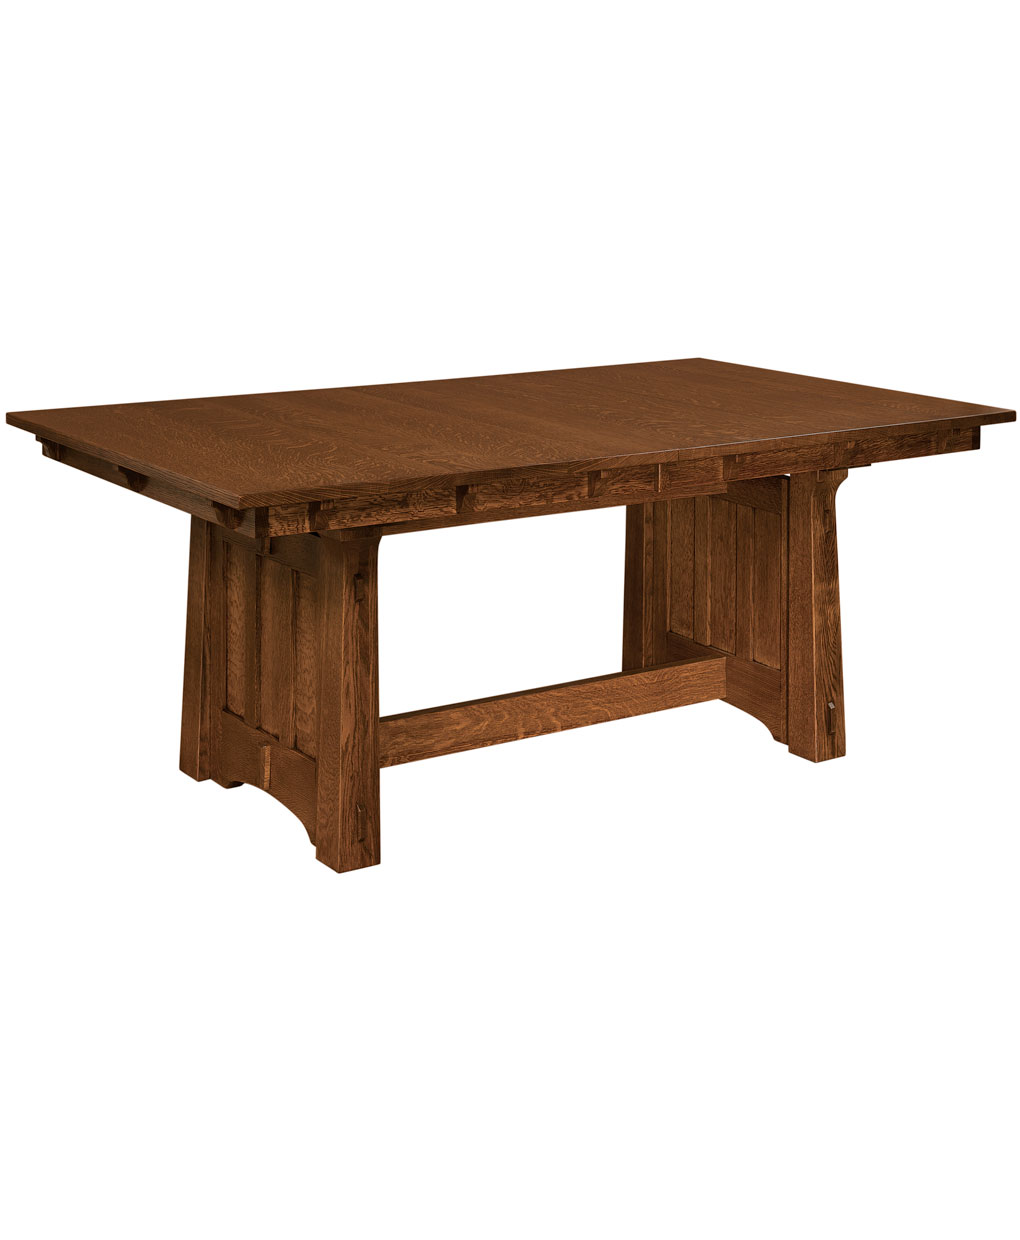 Beaumont trestle dining table amish direct furniture Trestle dining table